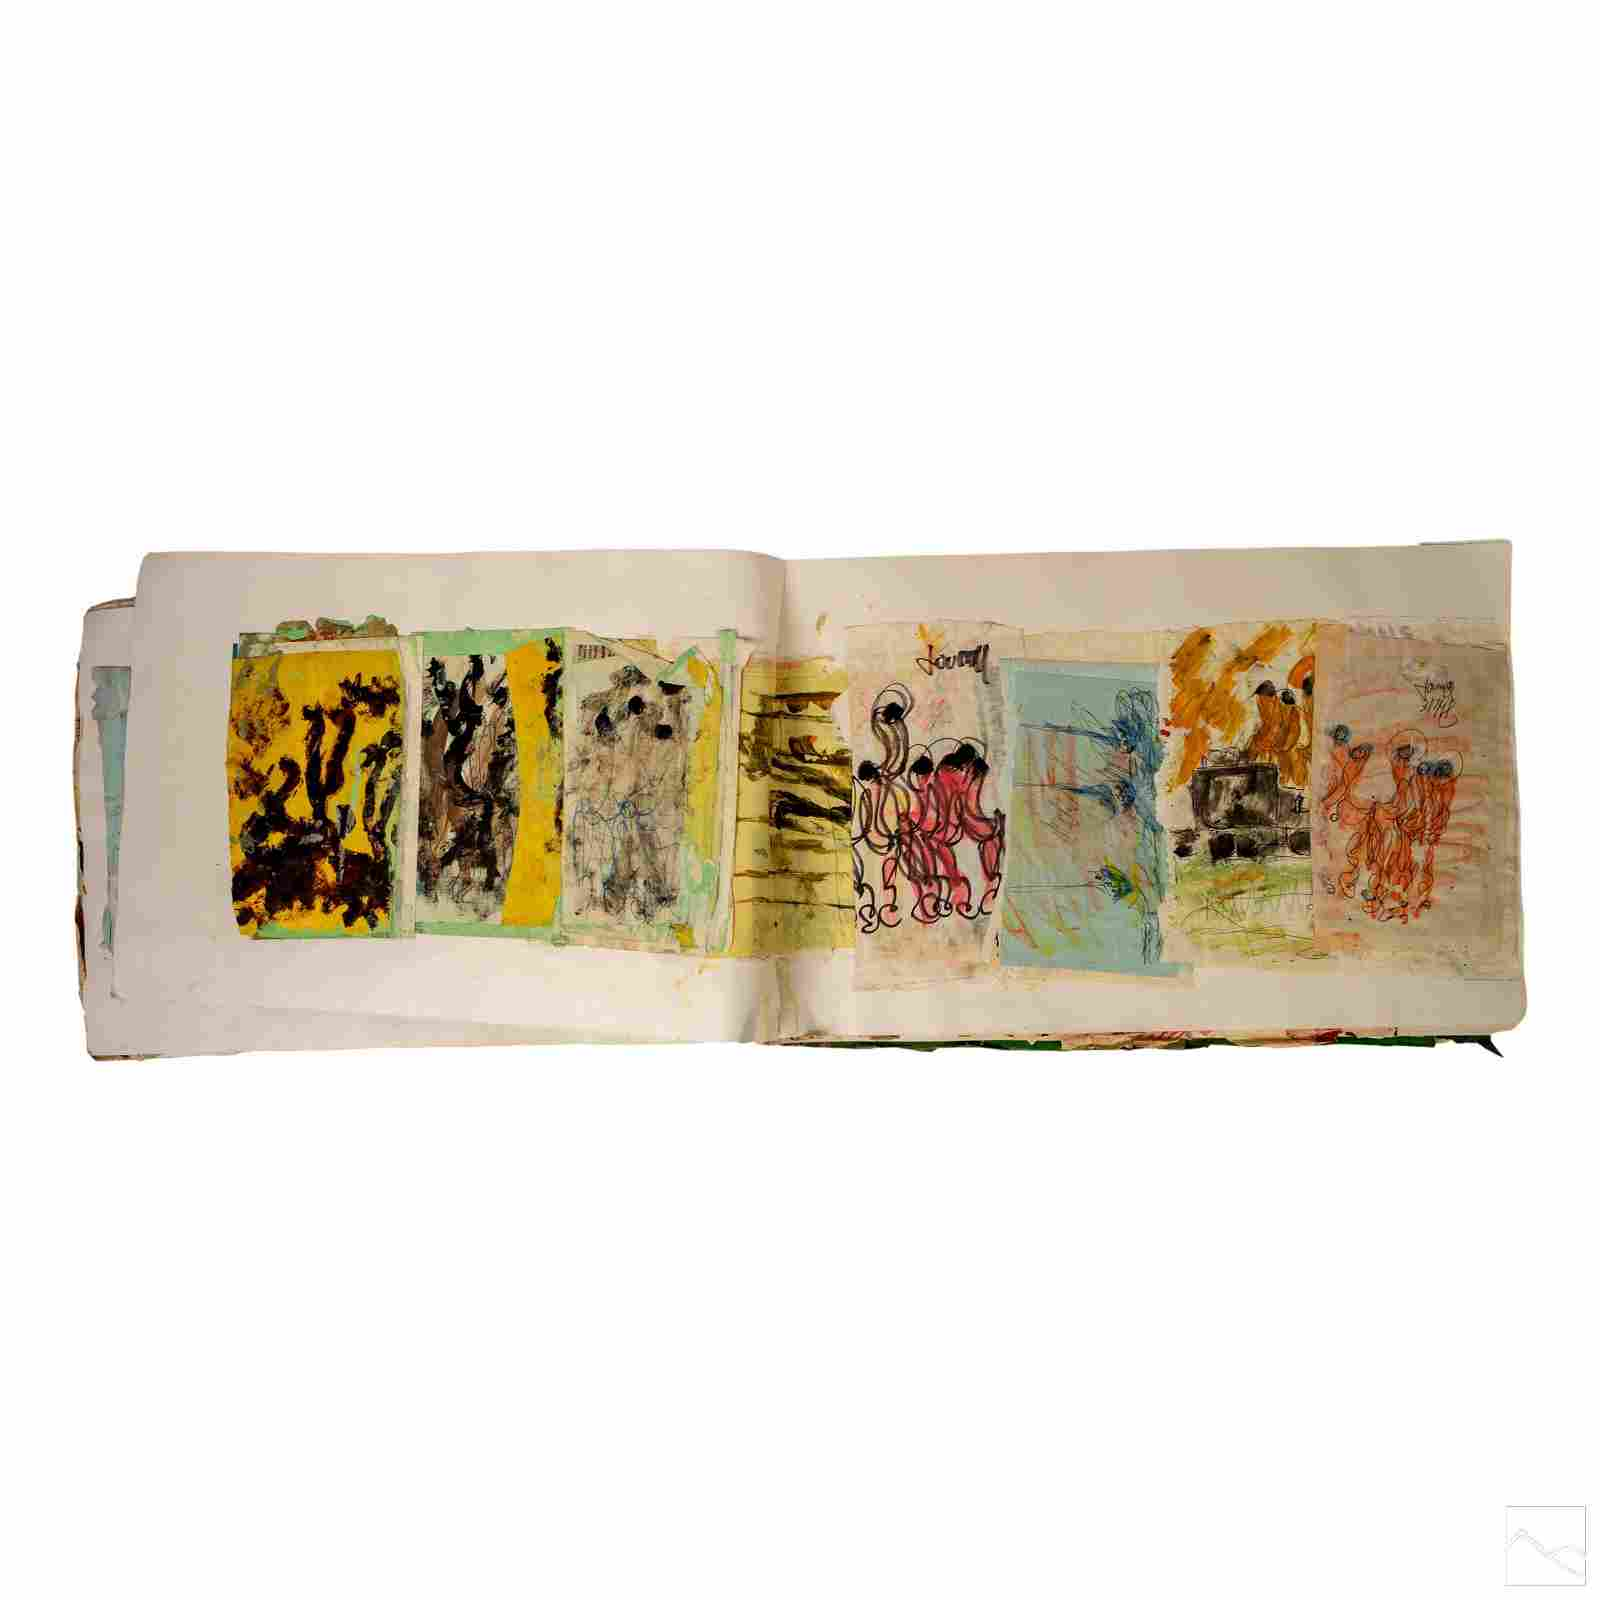 Purvis Young 1943-2010 American Outsider Art BOOK